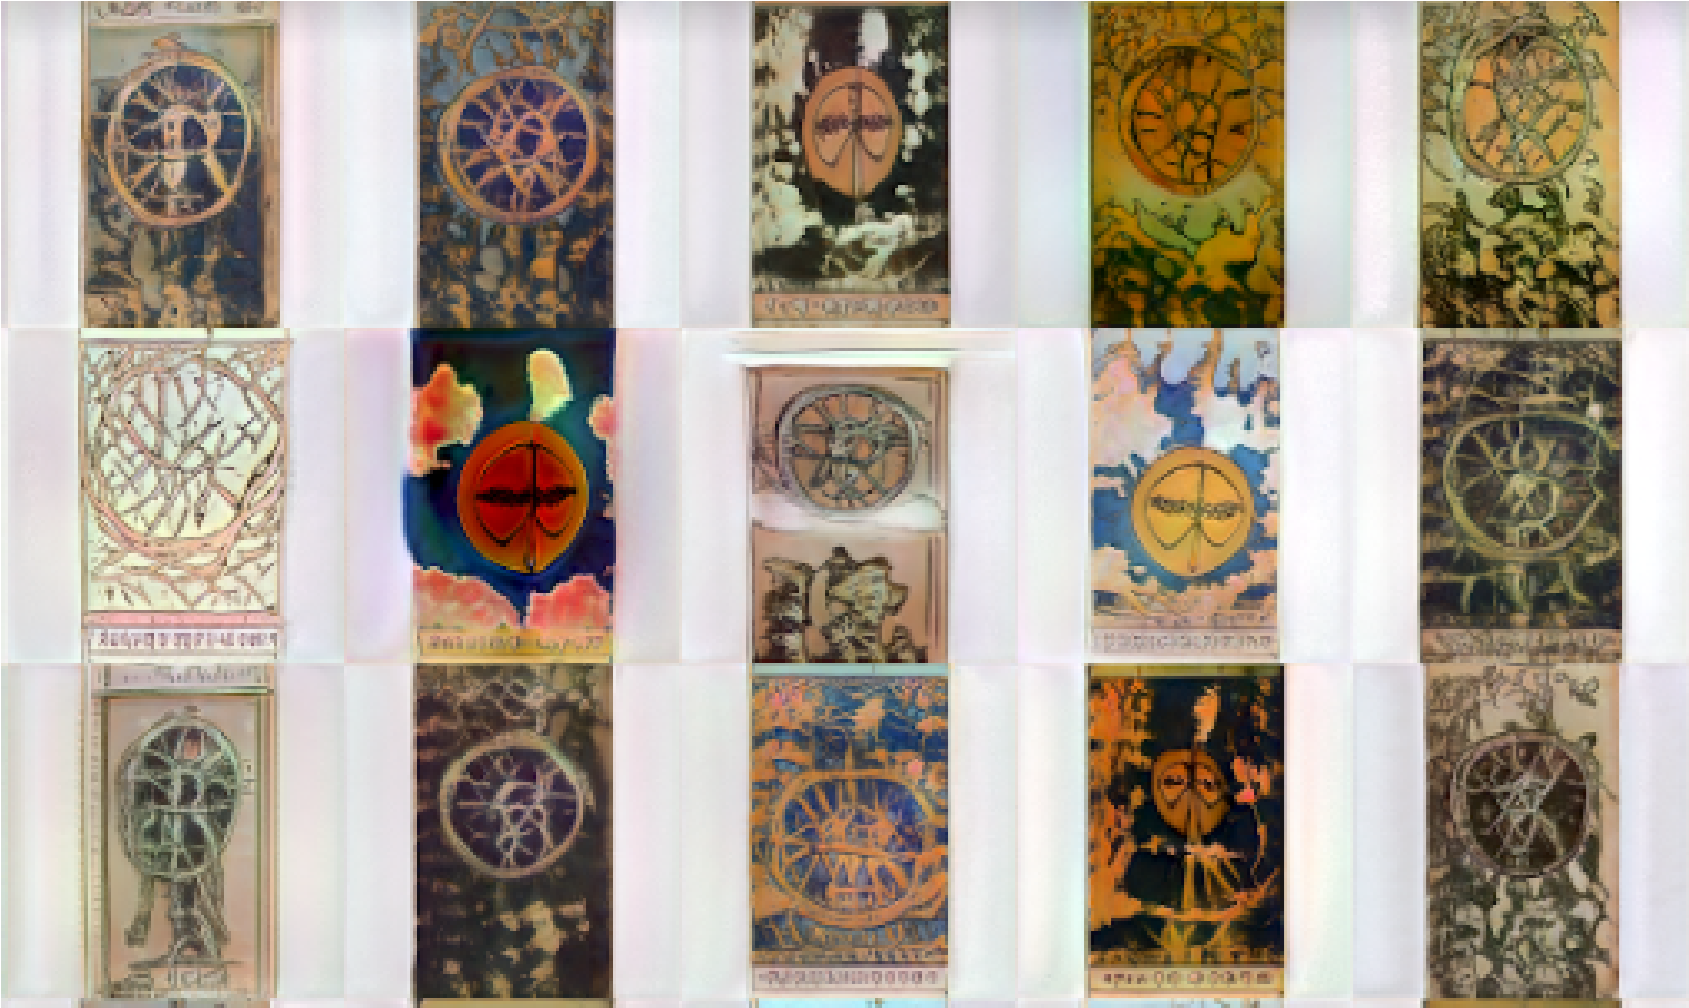 a grid image of several tarot cards illustrated by the artist